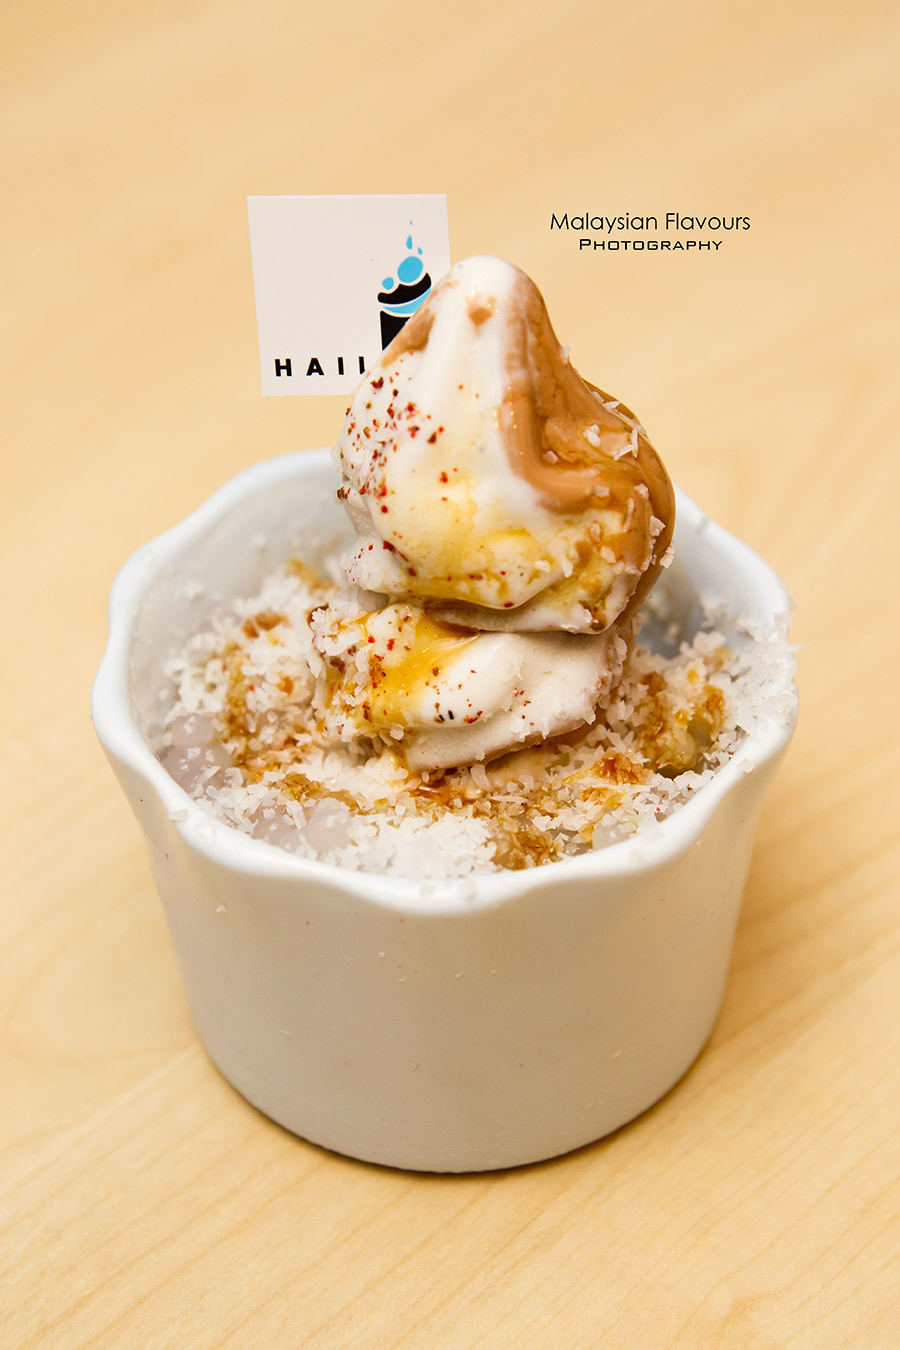 Hail's Soft Serve Ice Cream @ Damansara Uptown PJ